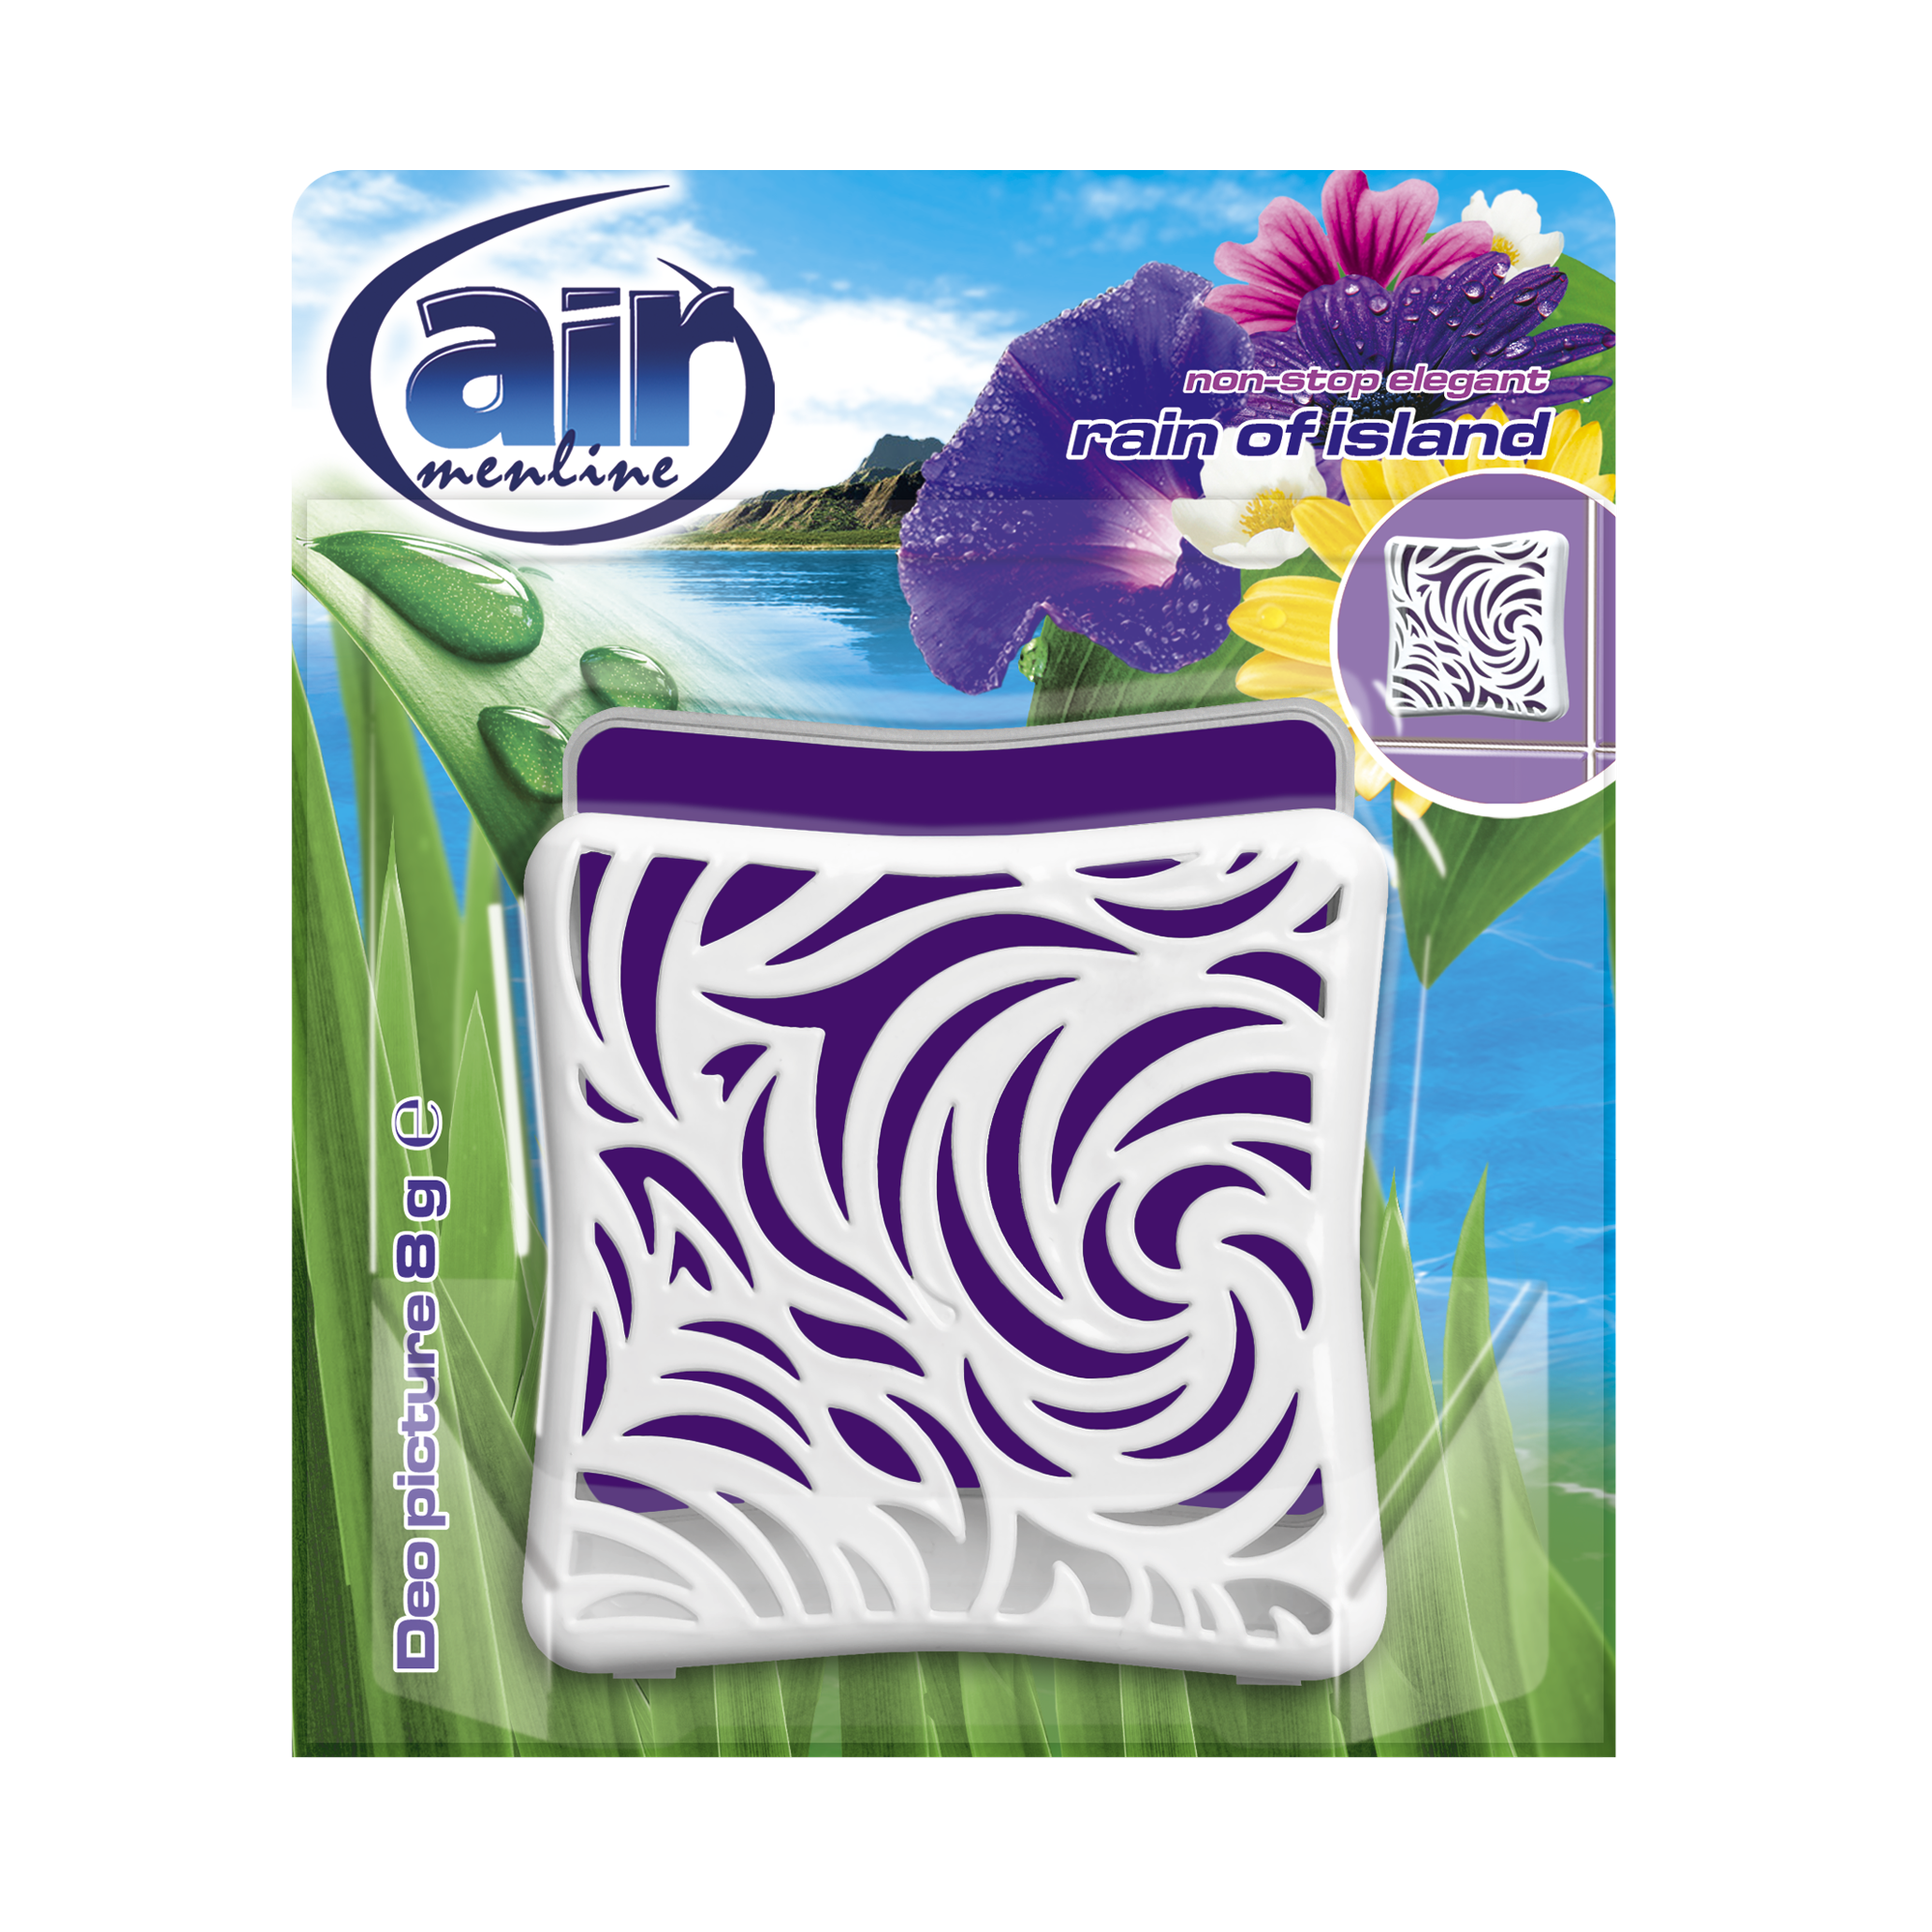 AIR menline deo picture air freshener Rain of Island